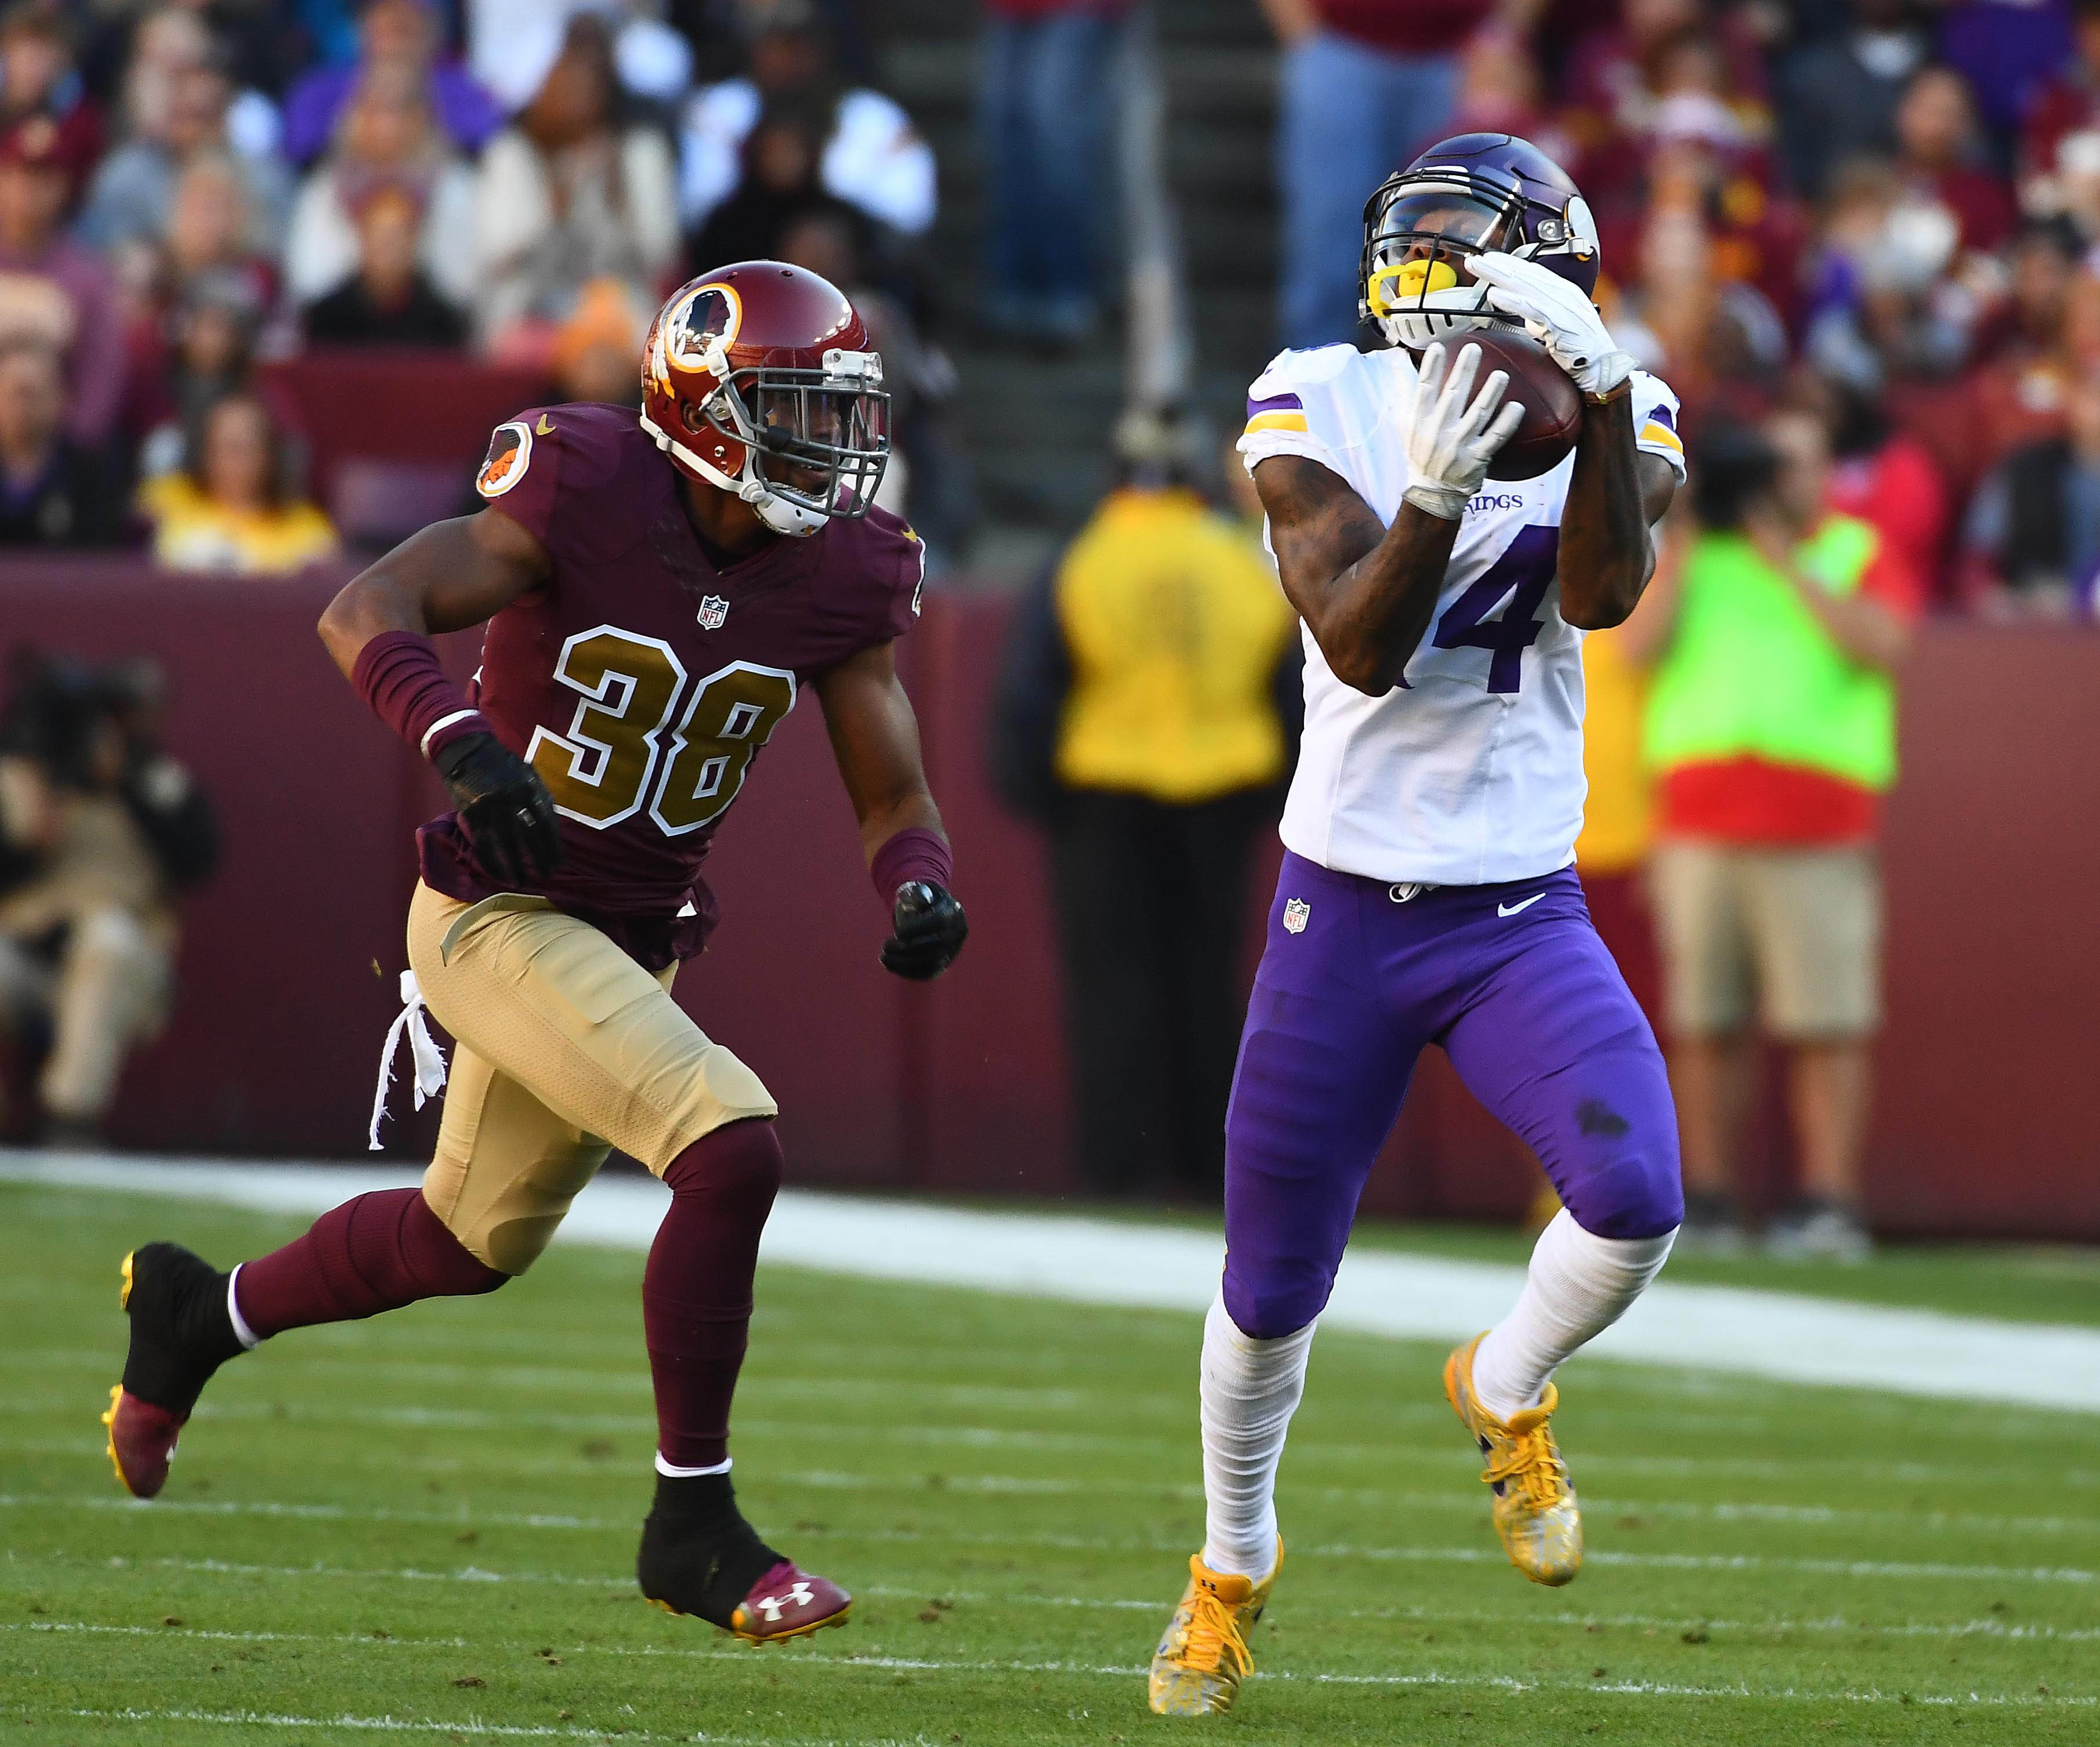 At his current pace Stefon Diggs is poised for a monster season